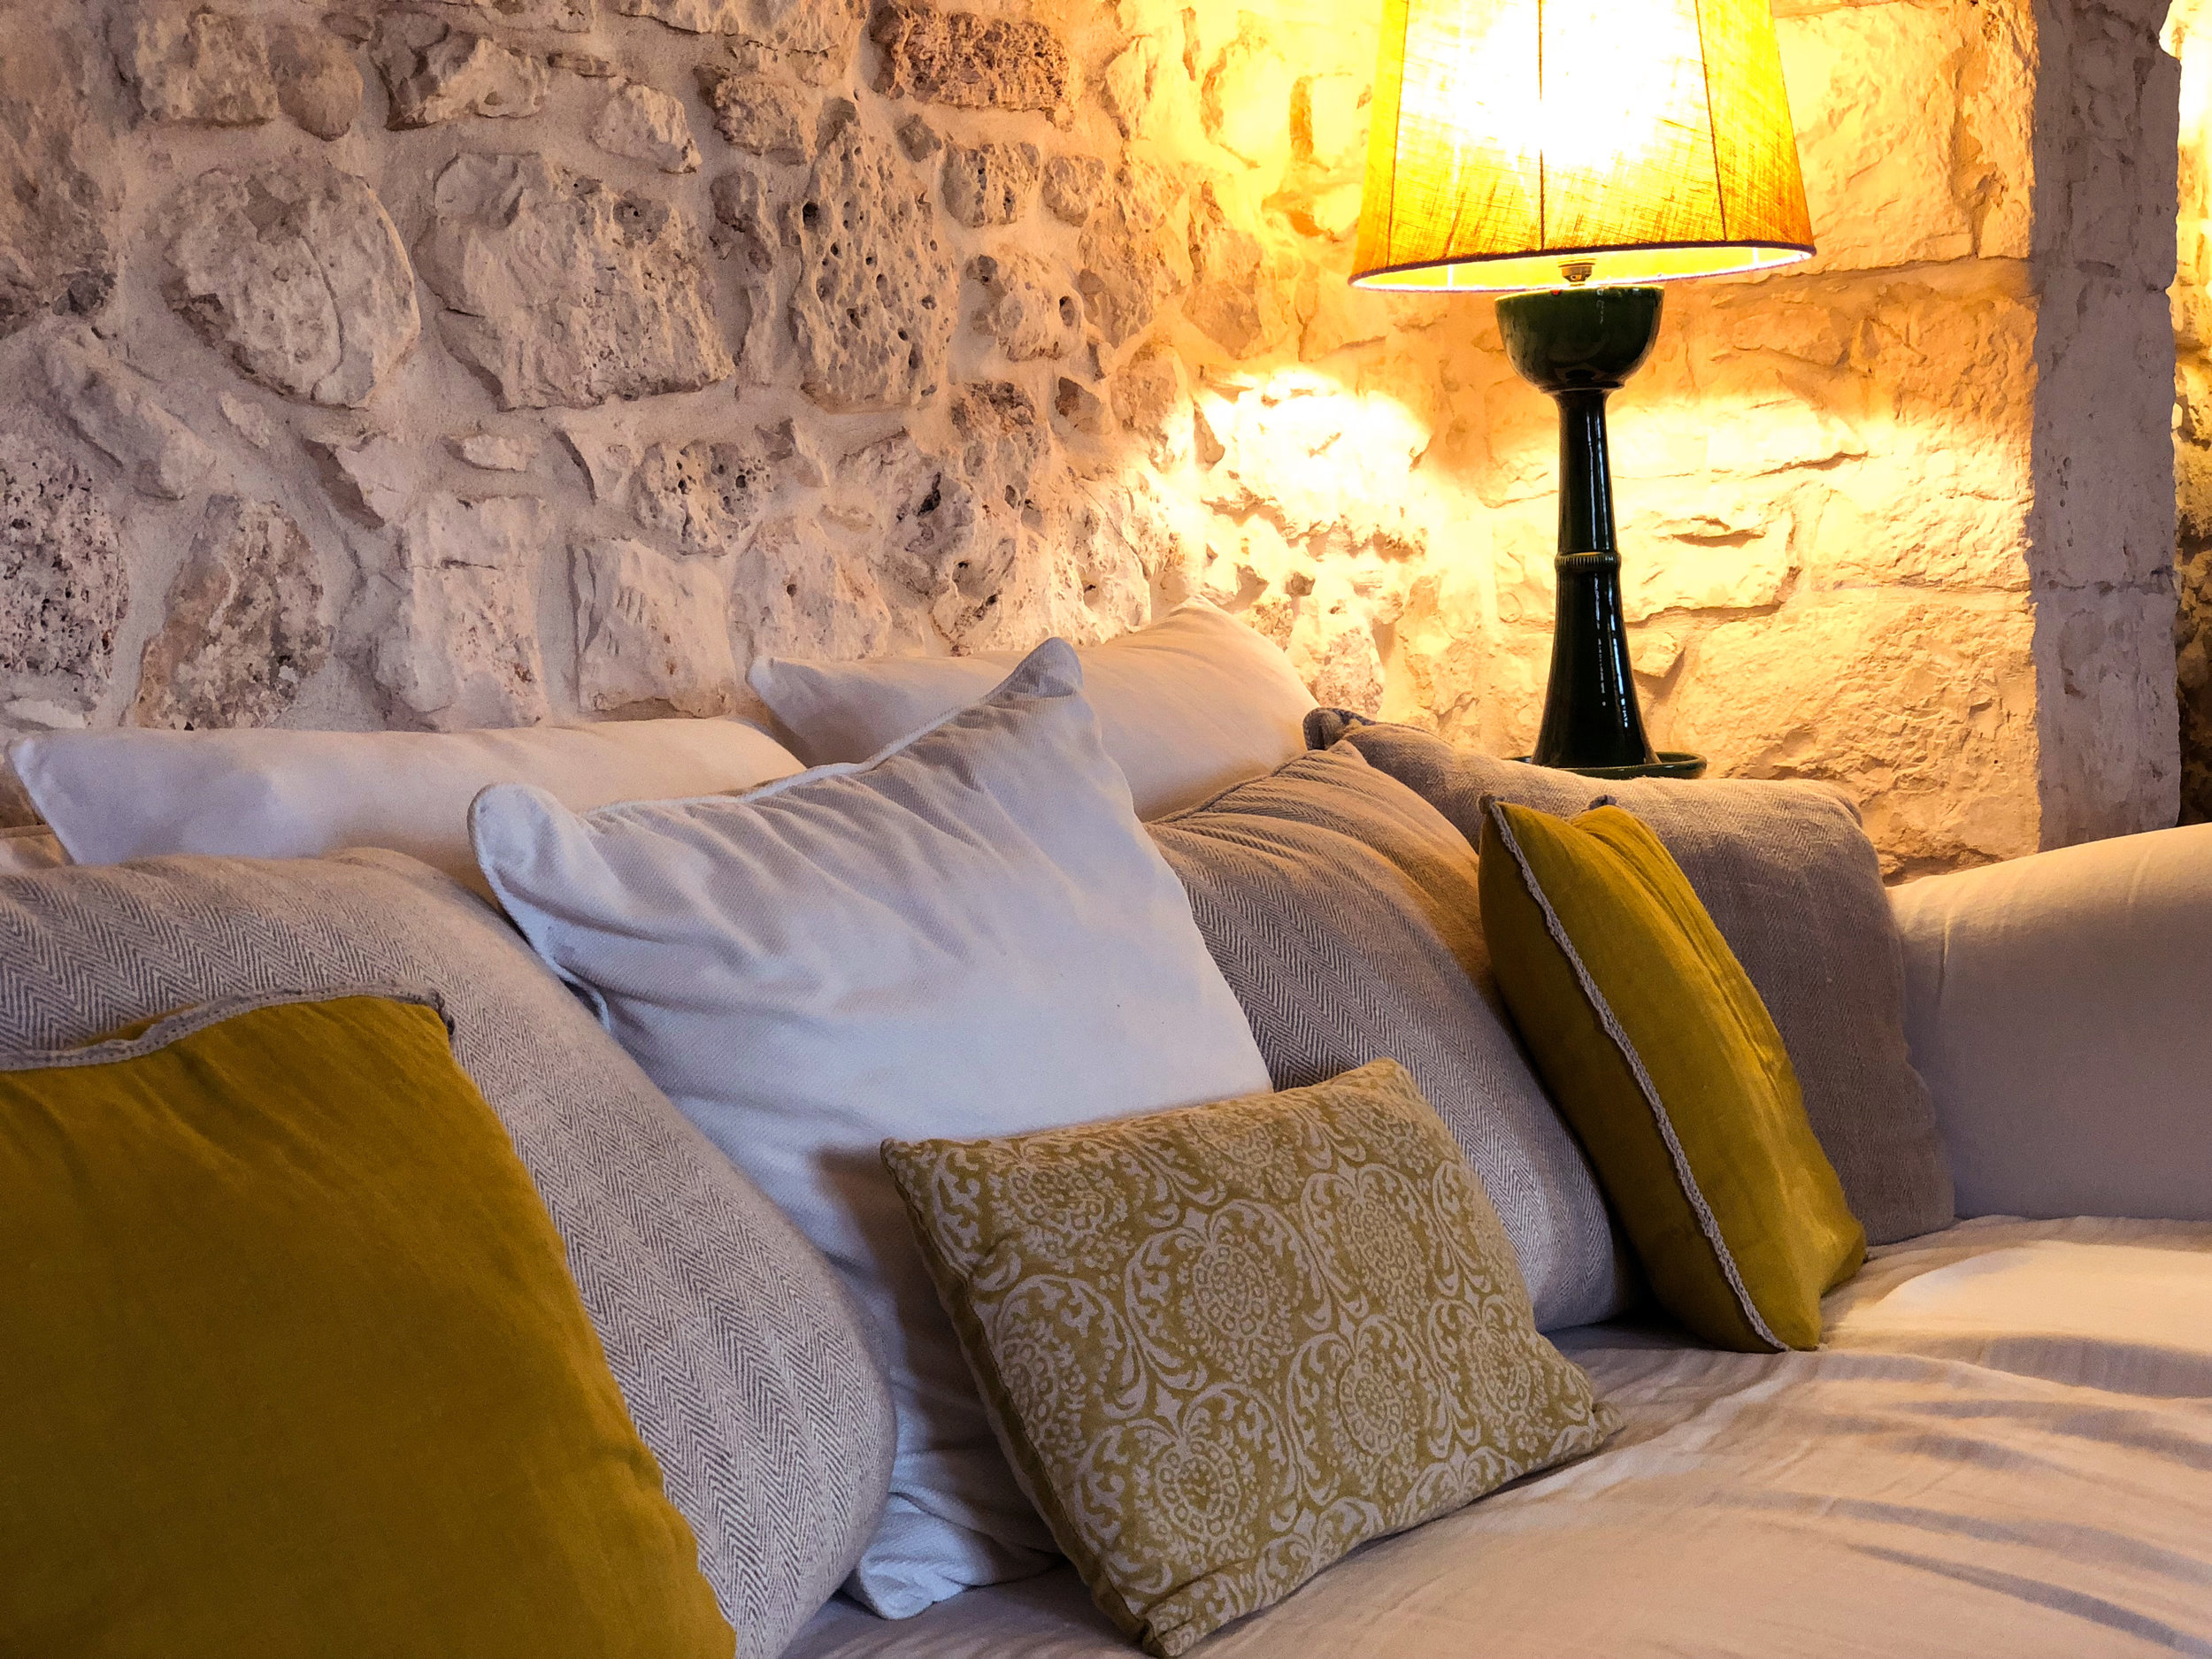 COMORT AND GOOD DESIGN COMBINED. masseria cervarolo, puglia